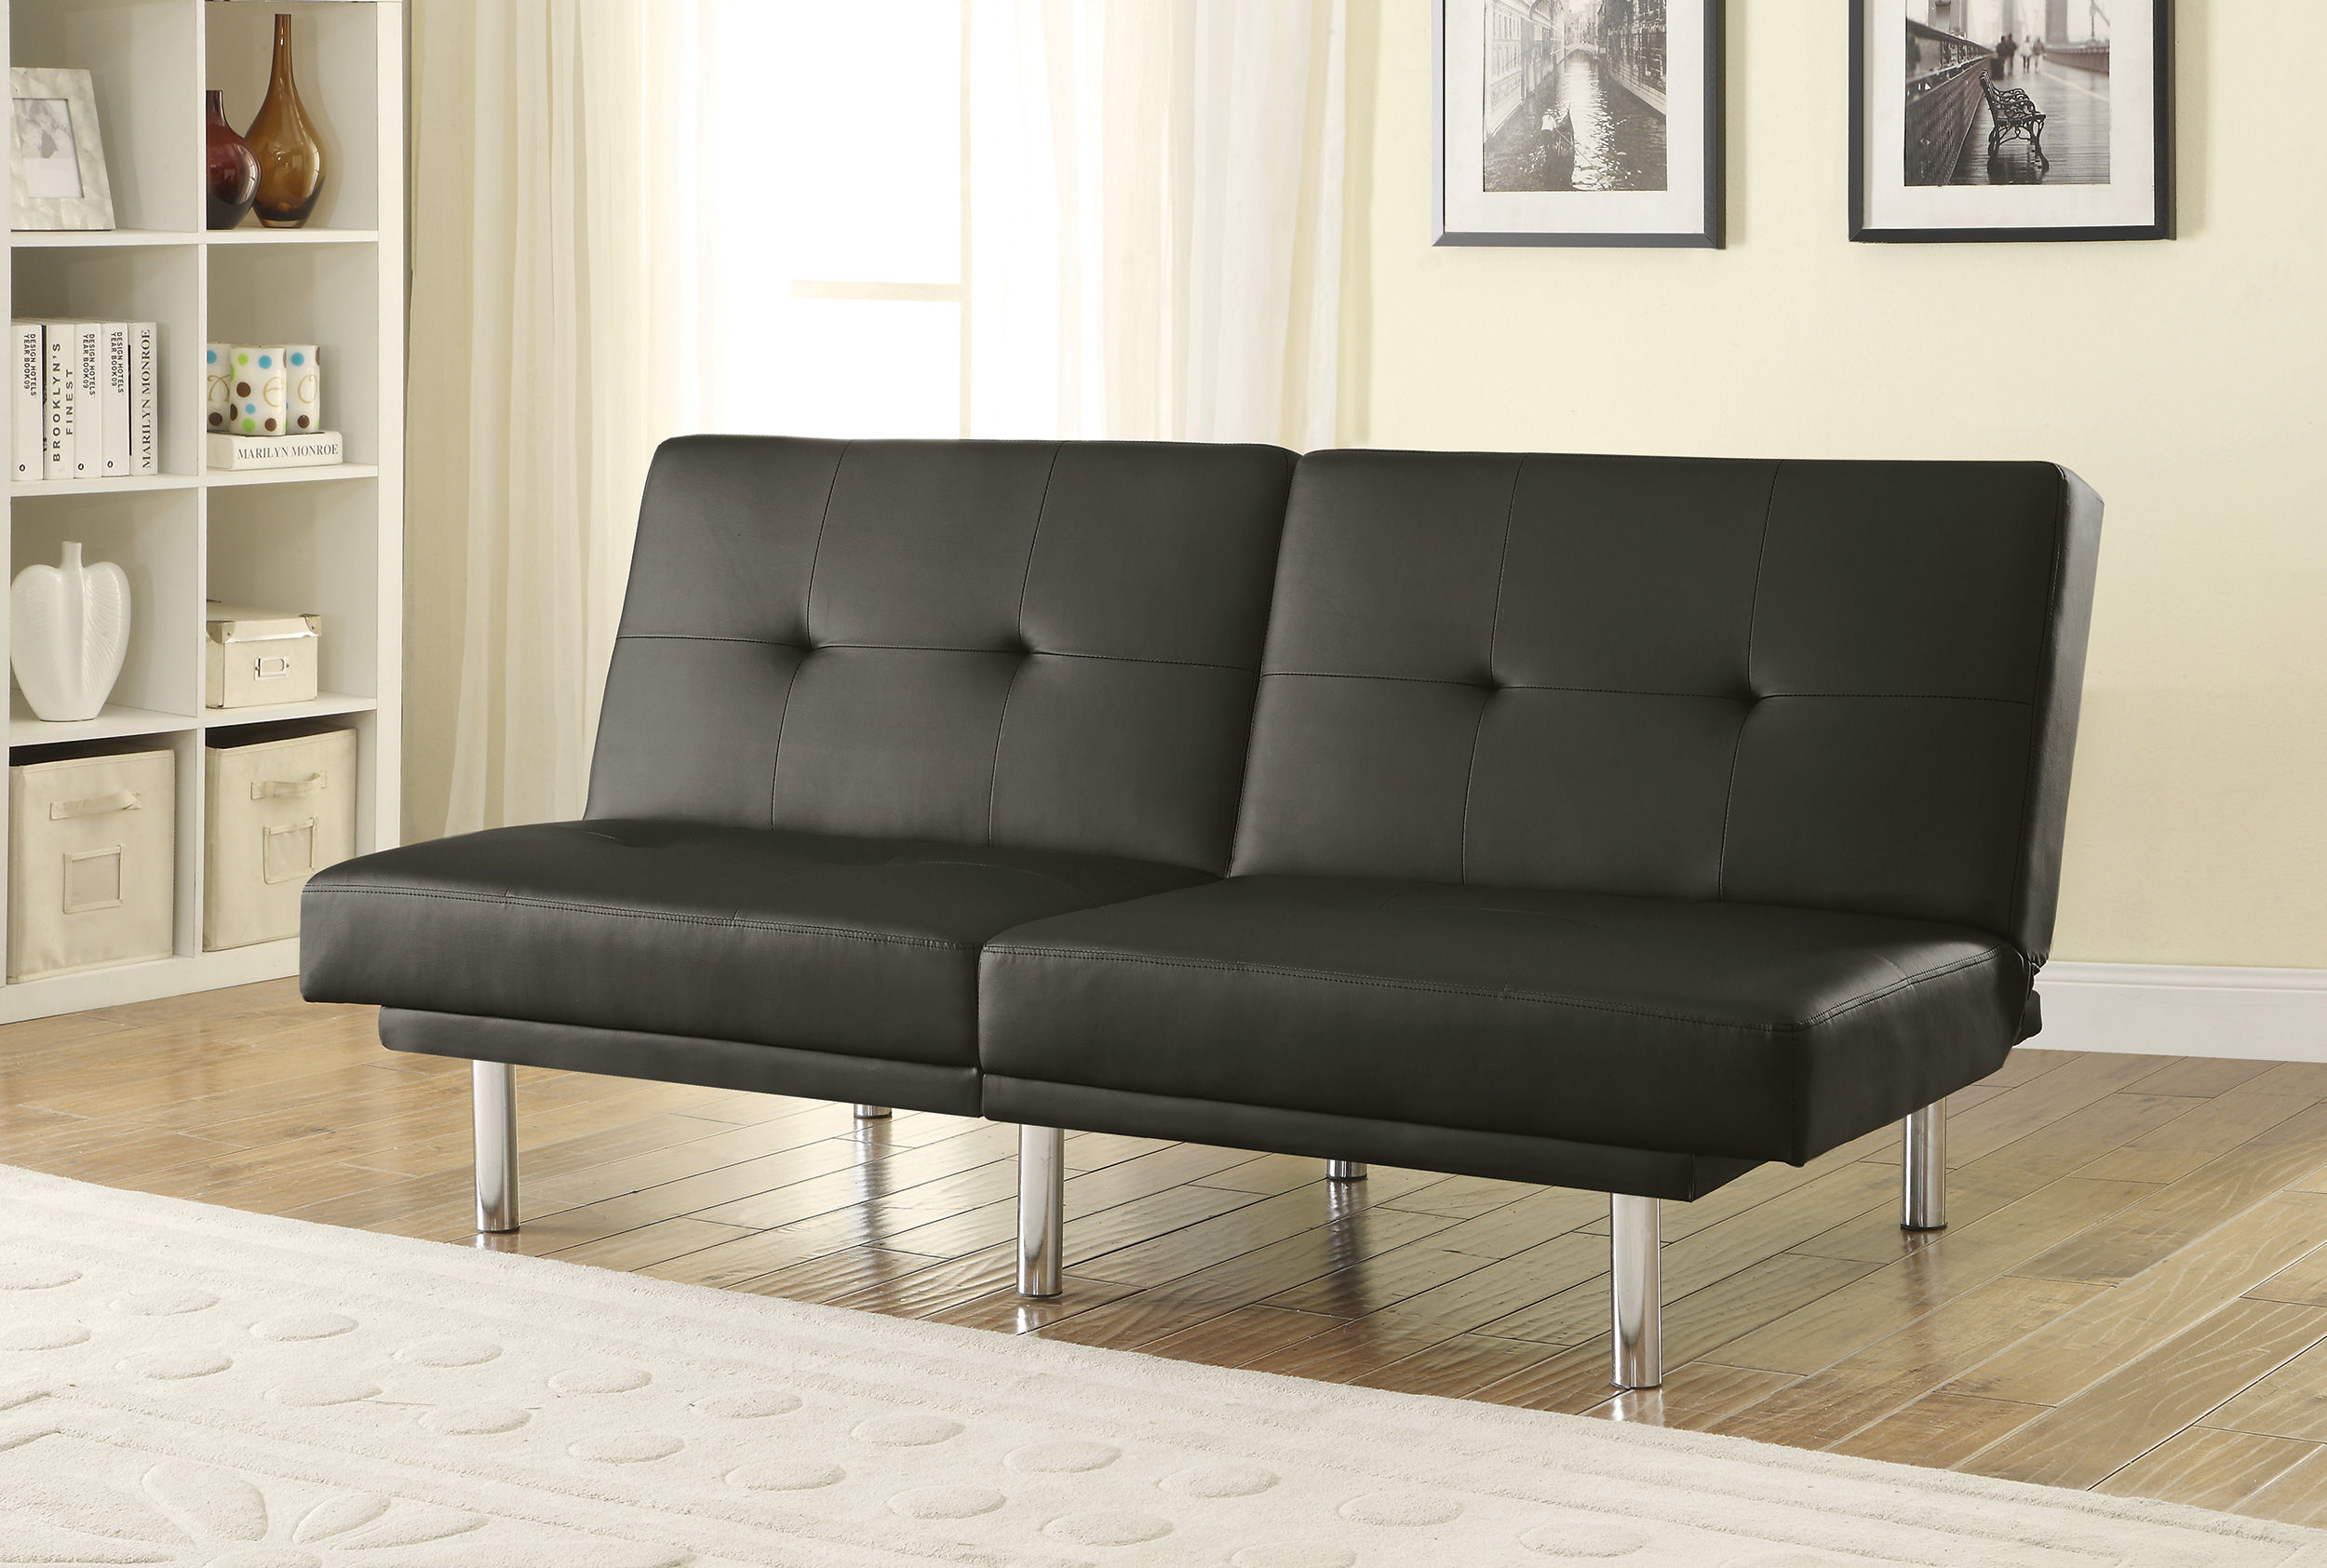 Awesome Elegant Black Faux Leather Armless Tufted Back Sofa Bed Download Free Architecture Designs Scobabritishbridgeorg